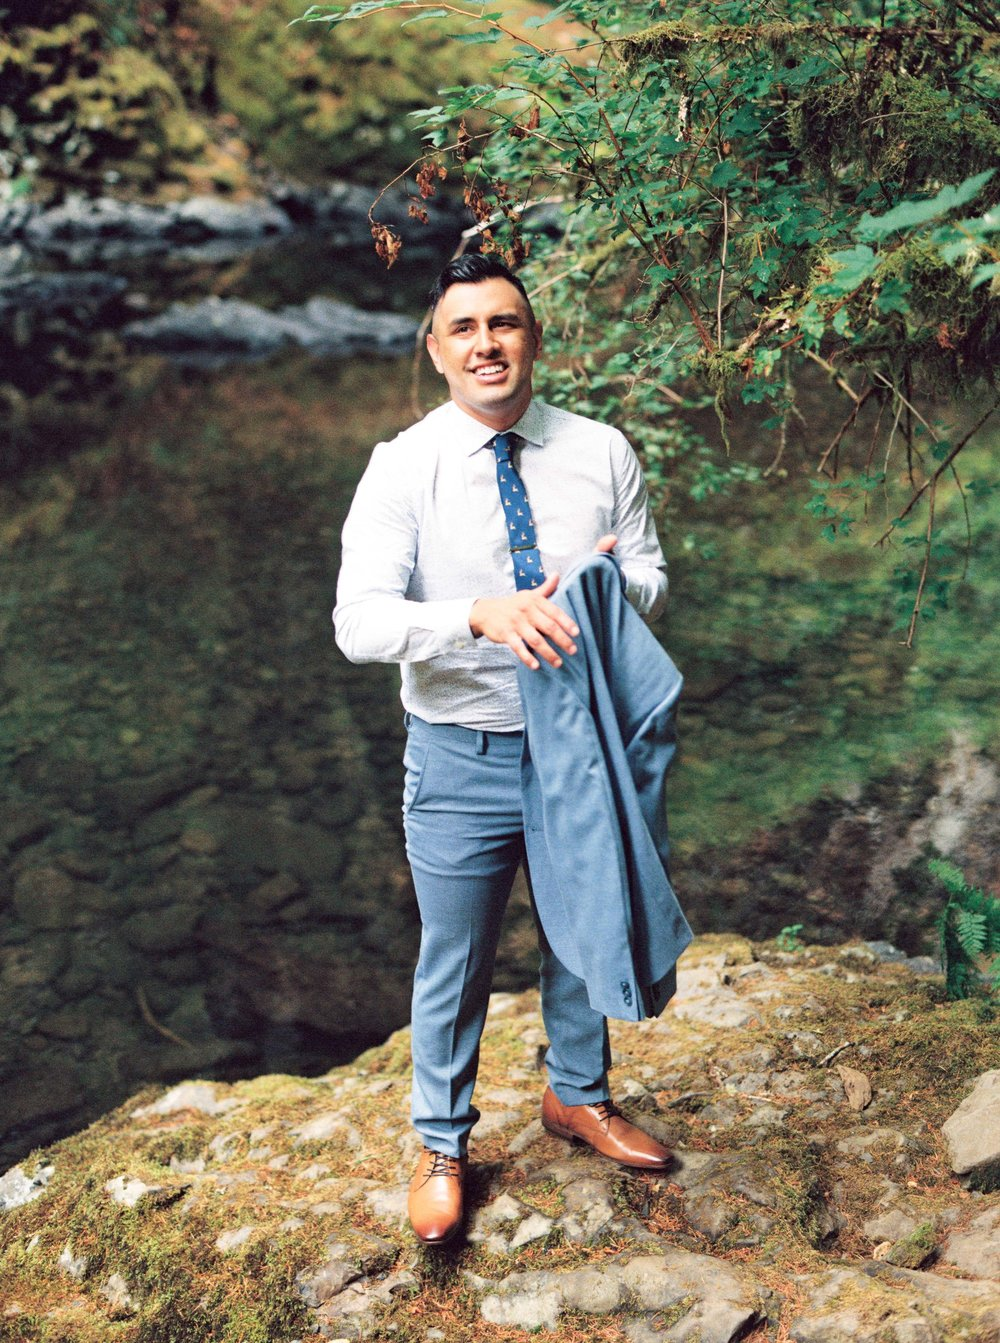 abiqua_falls_elopement_wedding_oregon_photographer_videographer_016.jpg